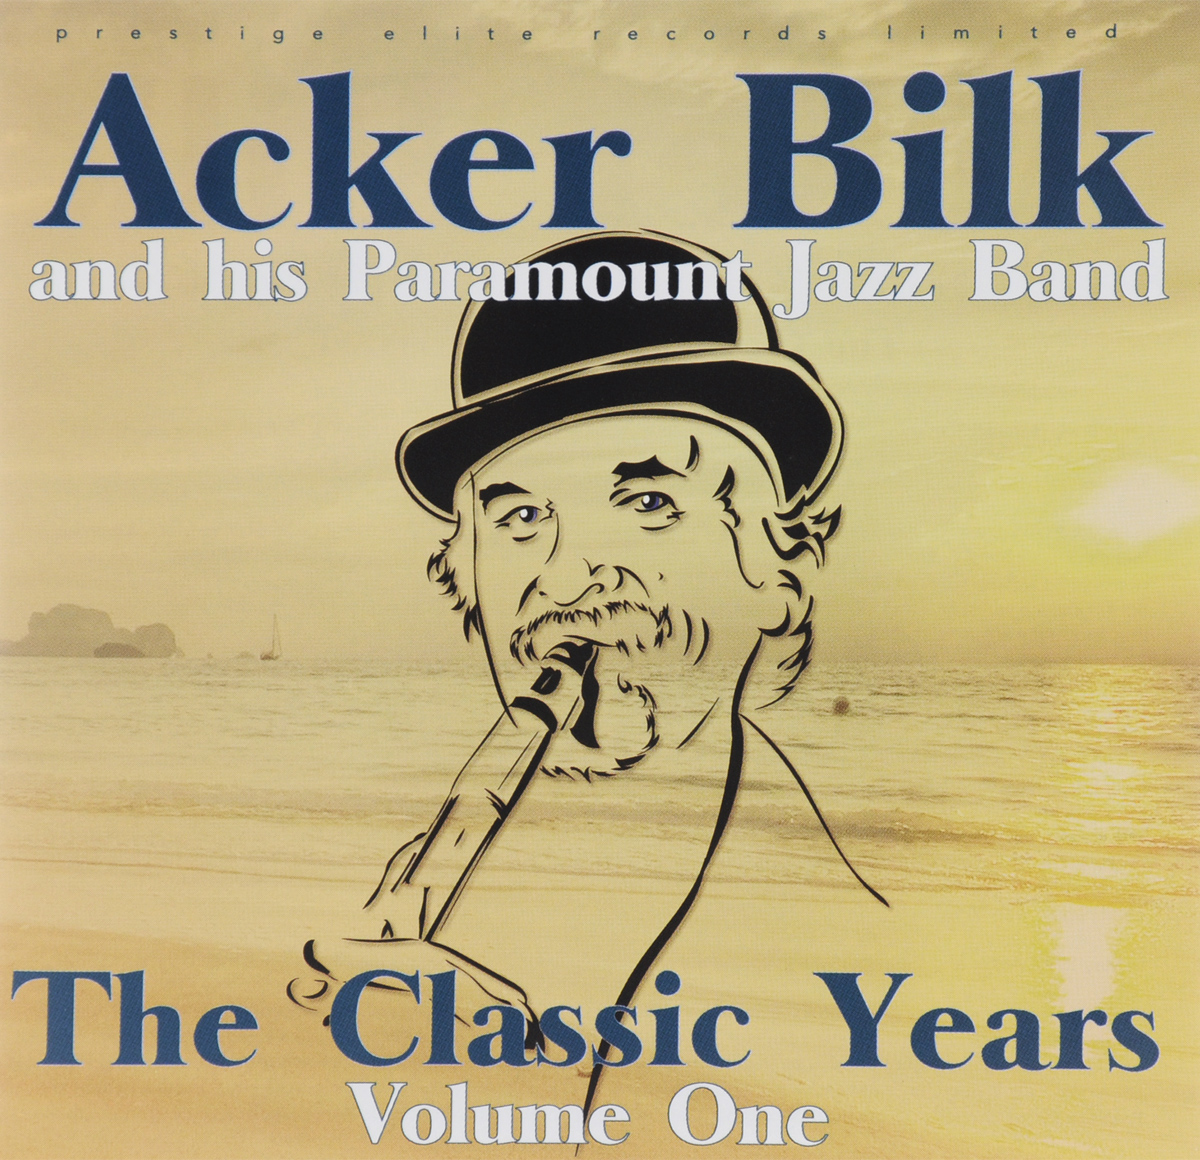 Фото - Acker Bilk and His Paramount Jazz Band Acker Bilk and His Paramount Jazz Band. Classic Years. Volume One ken colyer s jazzmen кен колайер ken colyer s skiffle group mr acker bilk